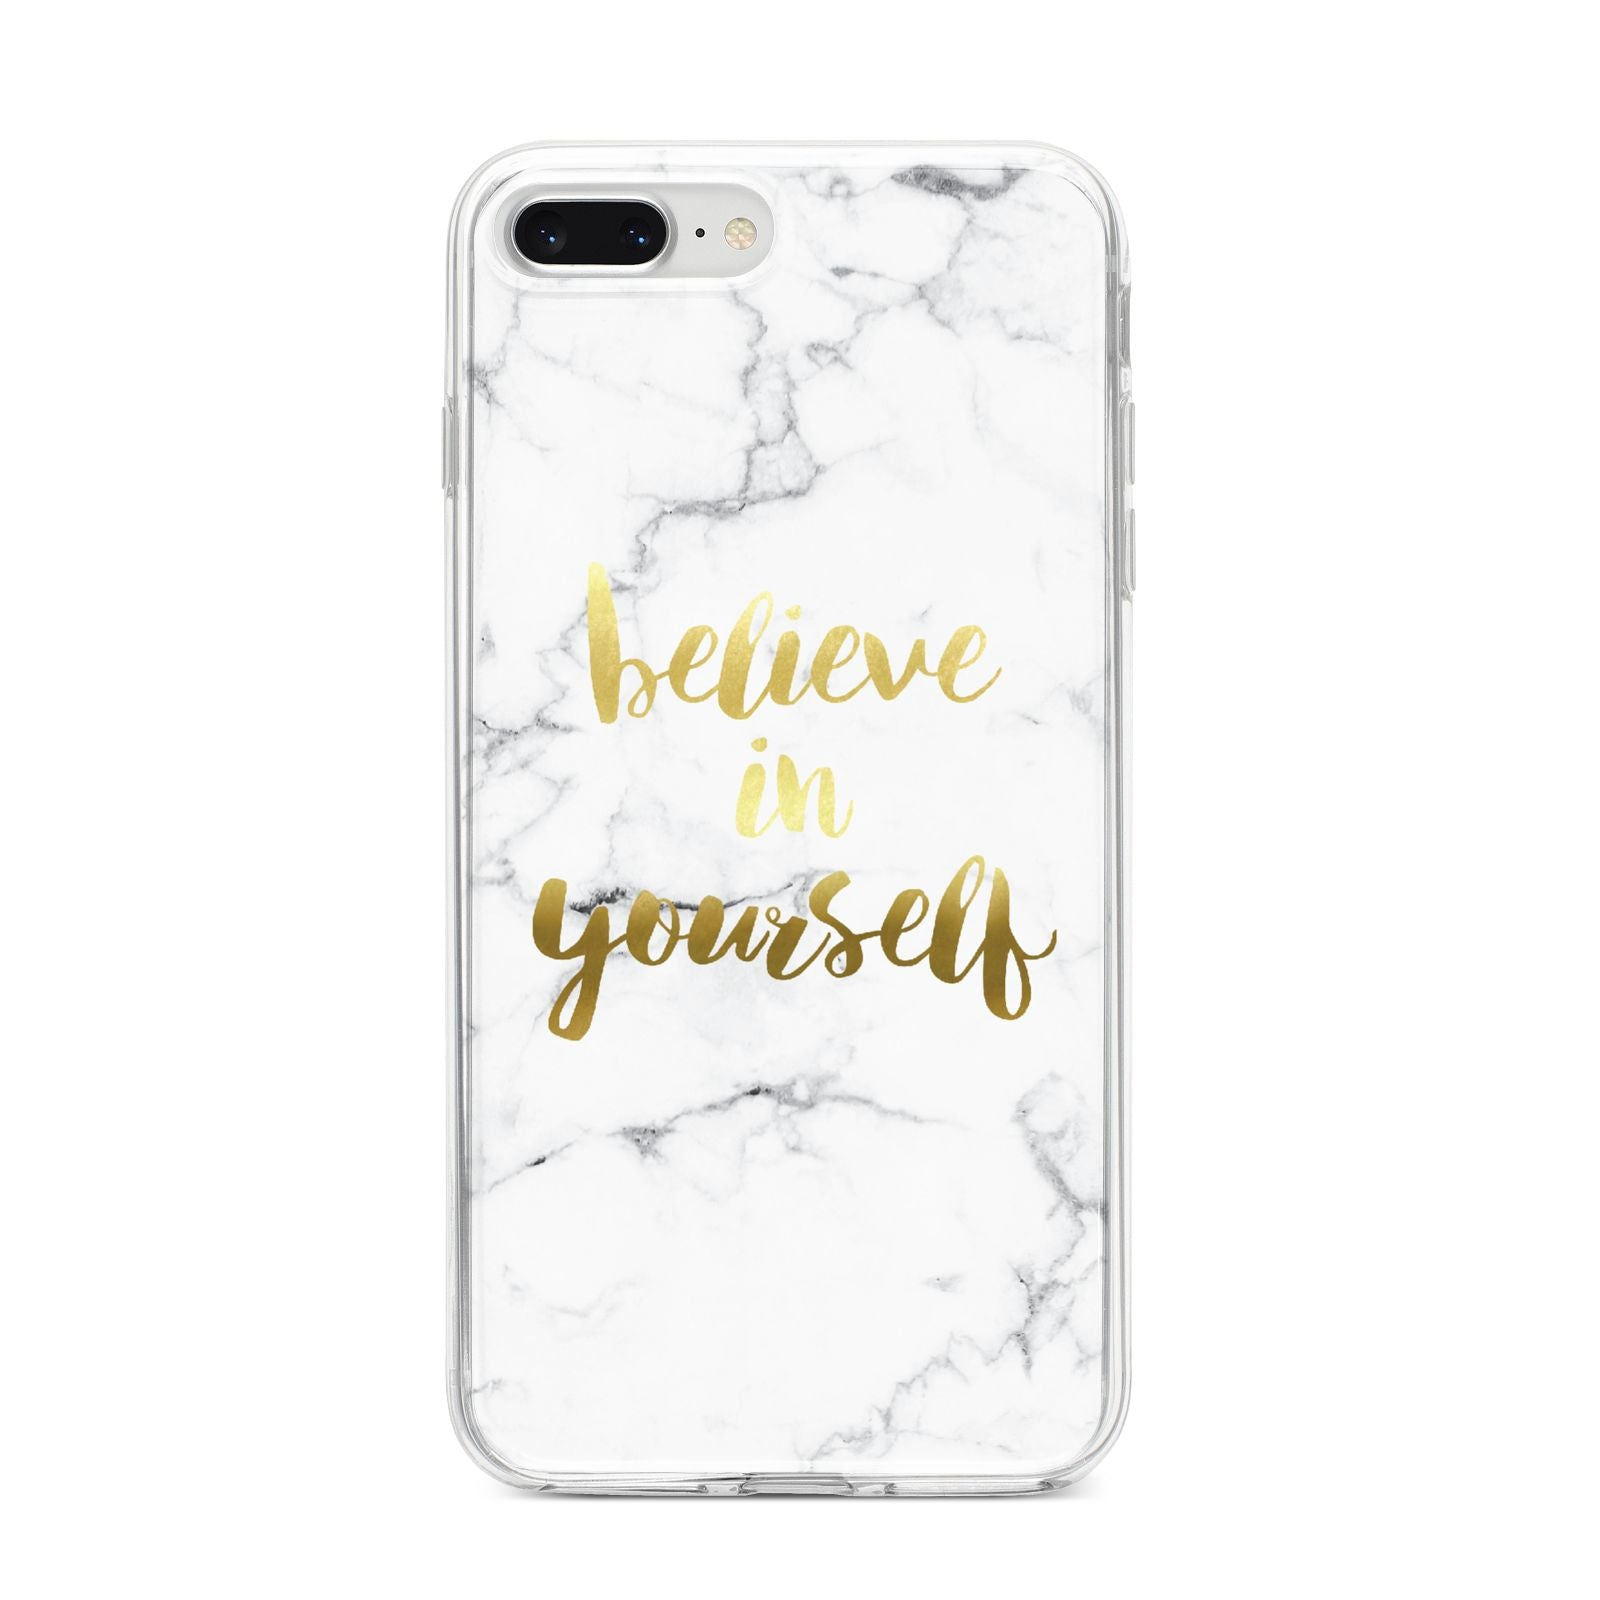 Believe In Yourself Gold Marble iPhone 8 Plus Bumper Case on Silver iPhone